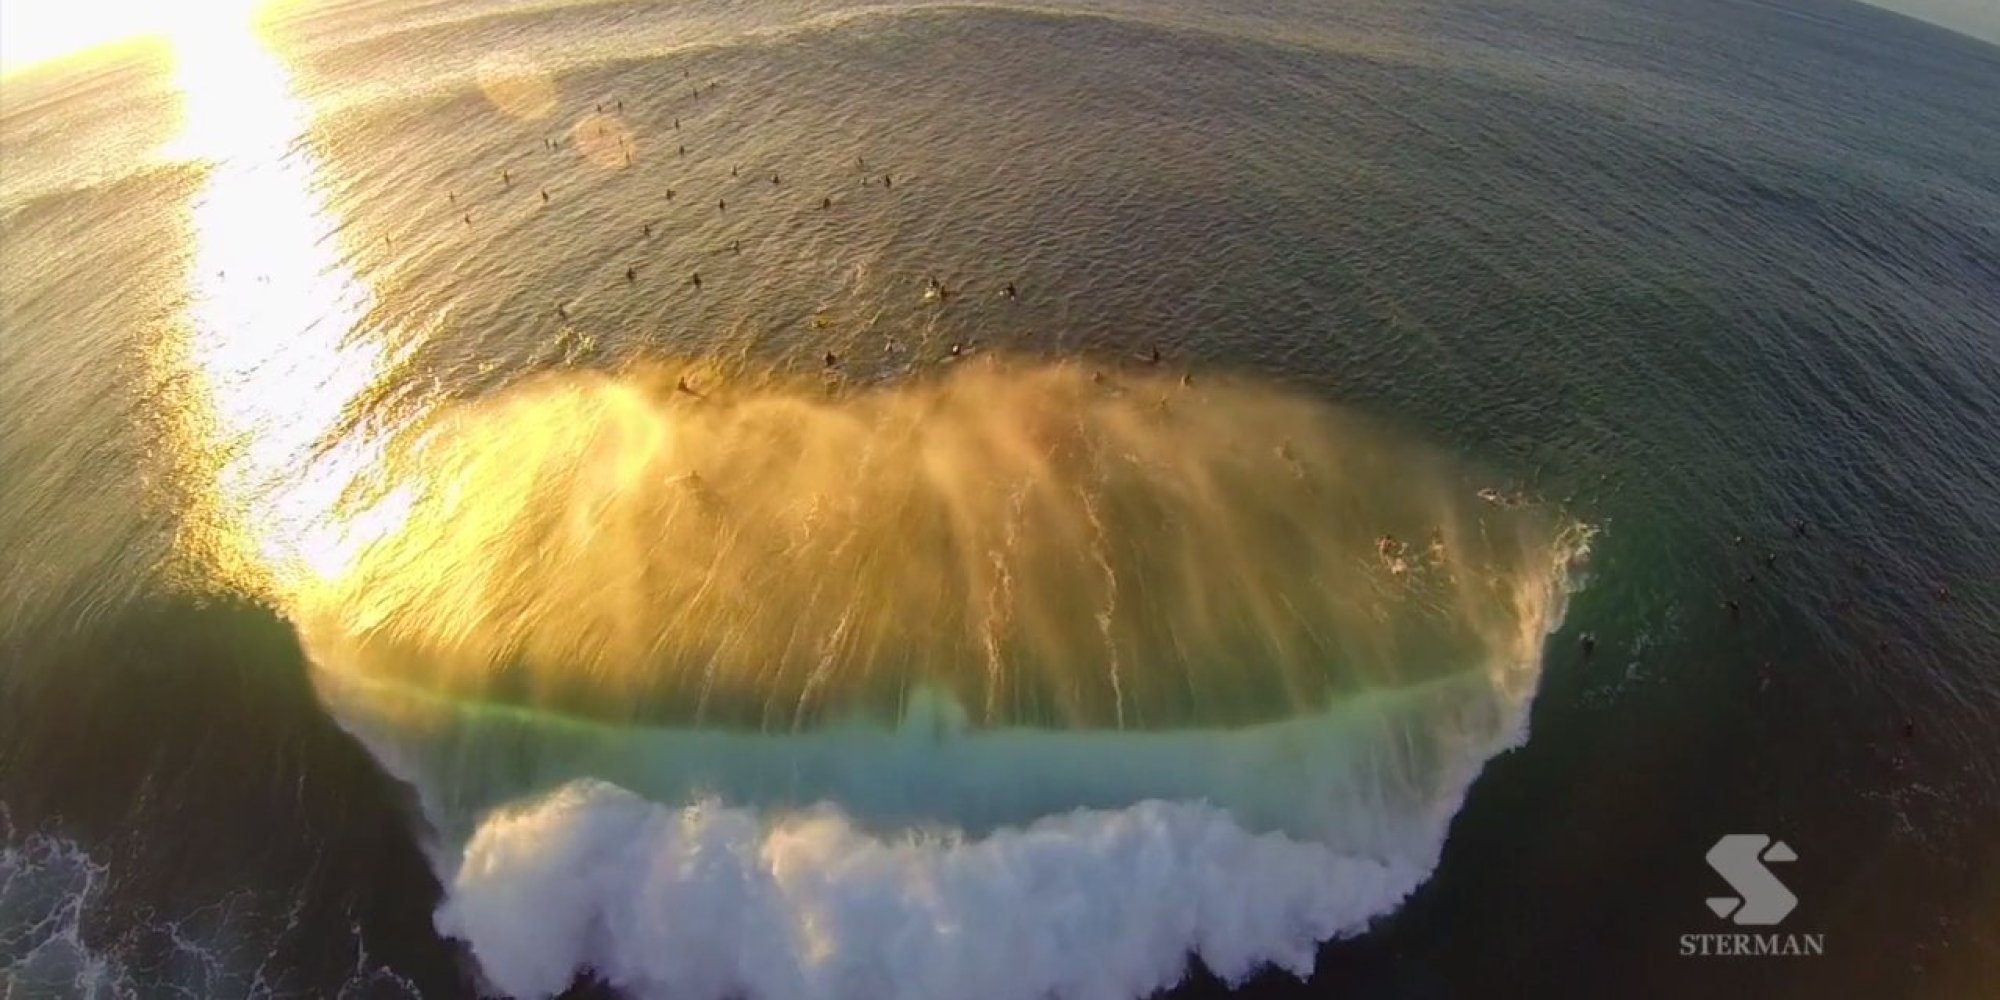 Banzai Pipeline Video Shows Why An Entire State Is